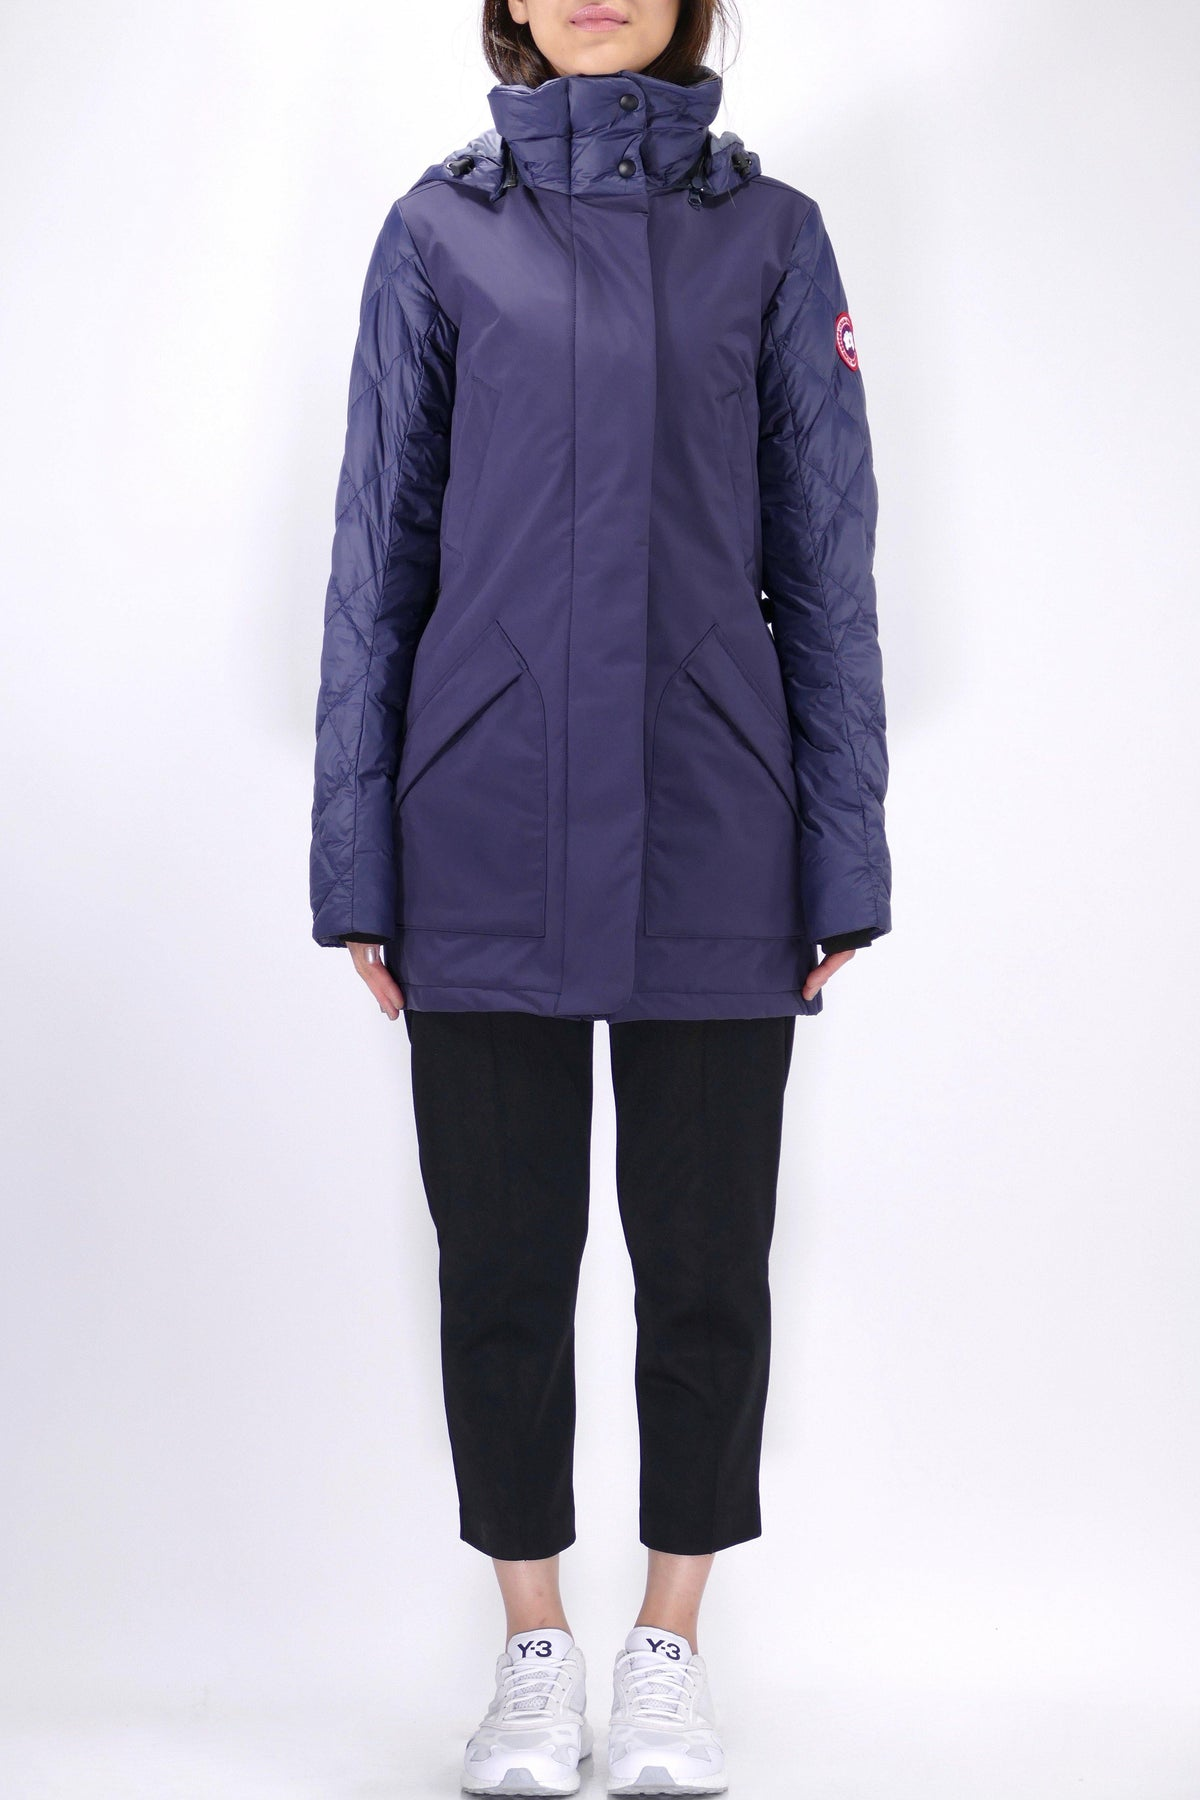 Canada Goose Womens Lite Coat Berkley - Navy